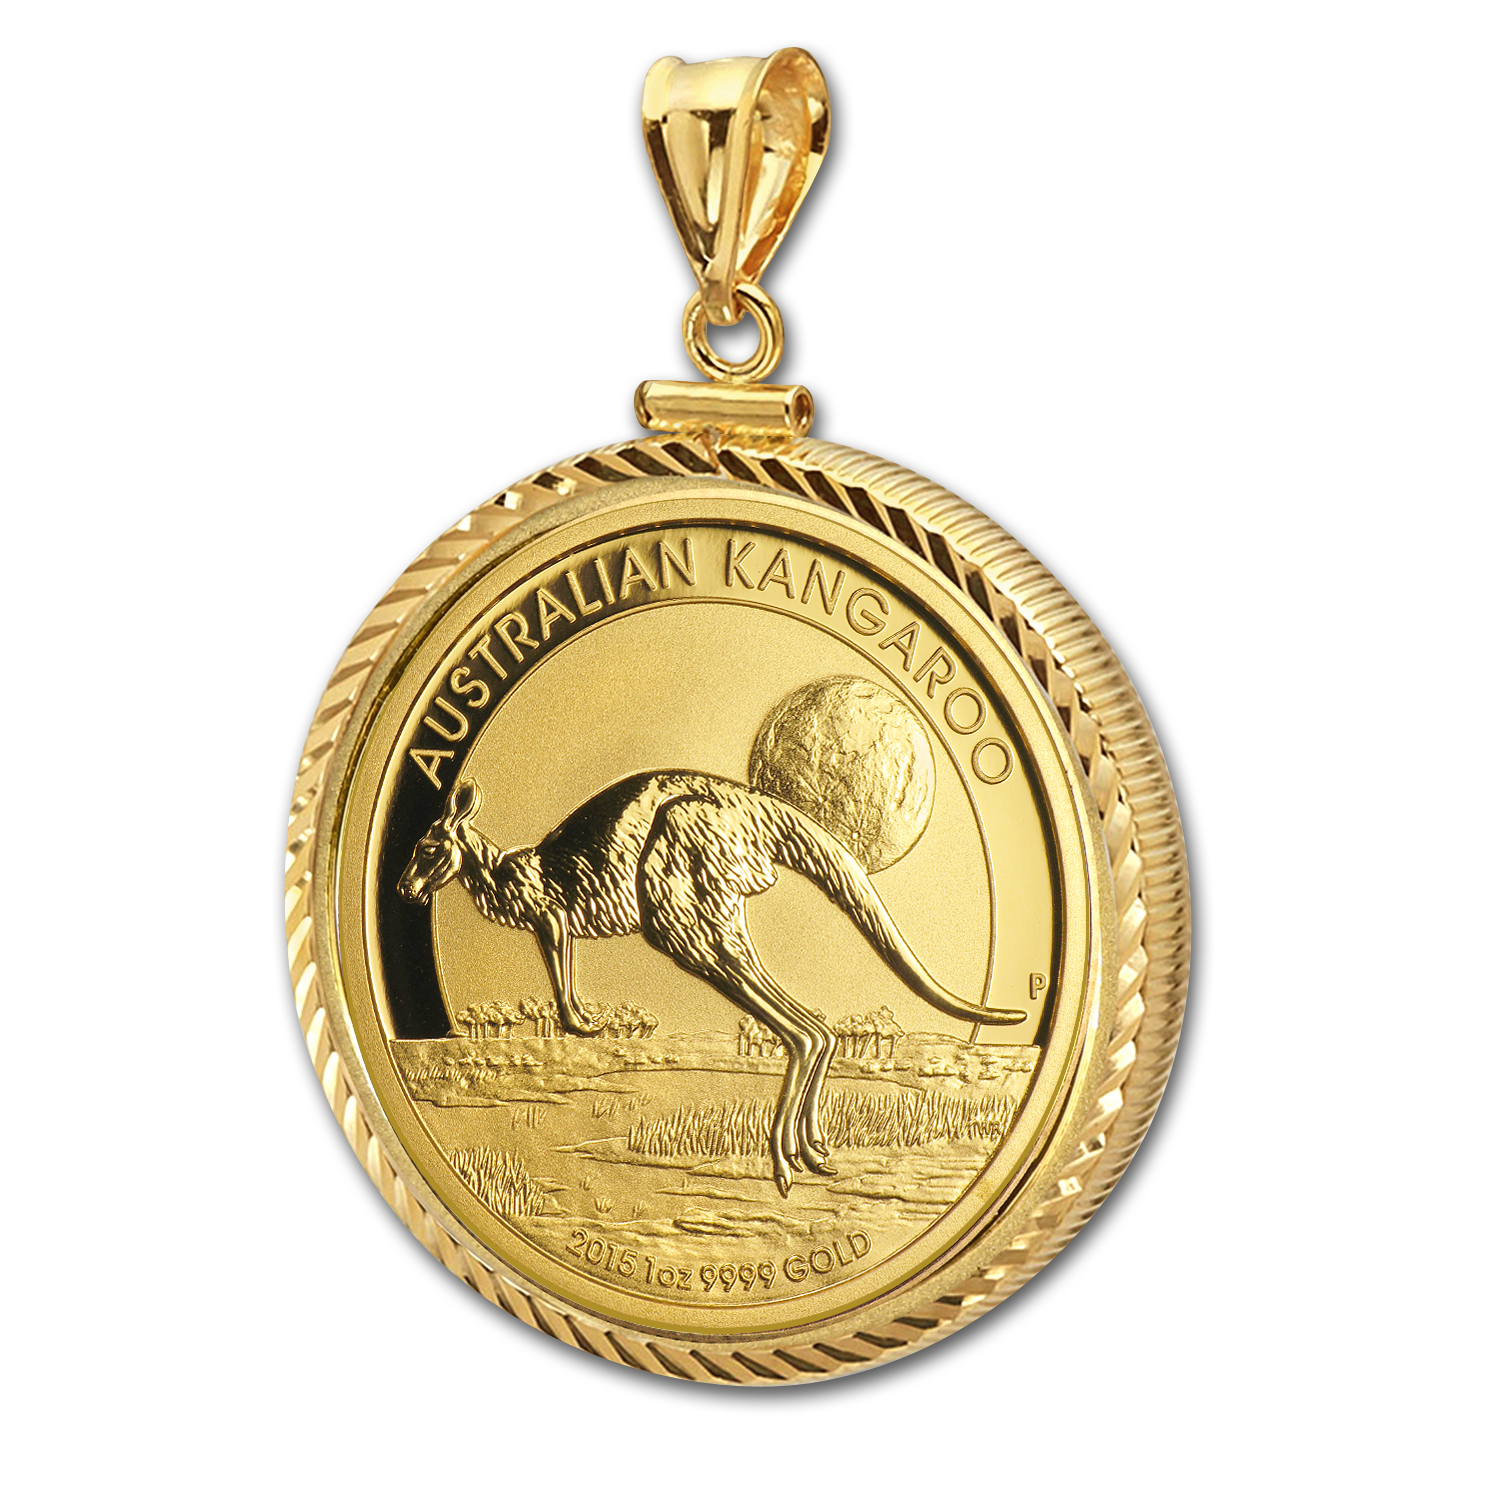 2015 1 oz Gold Kangaroo Pendant (Diamond-ScrewTop Bezel)